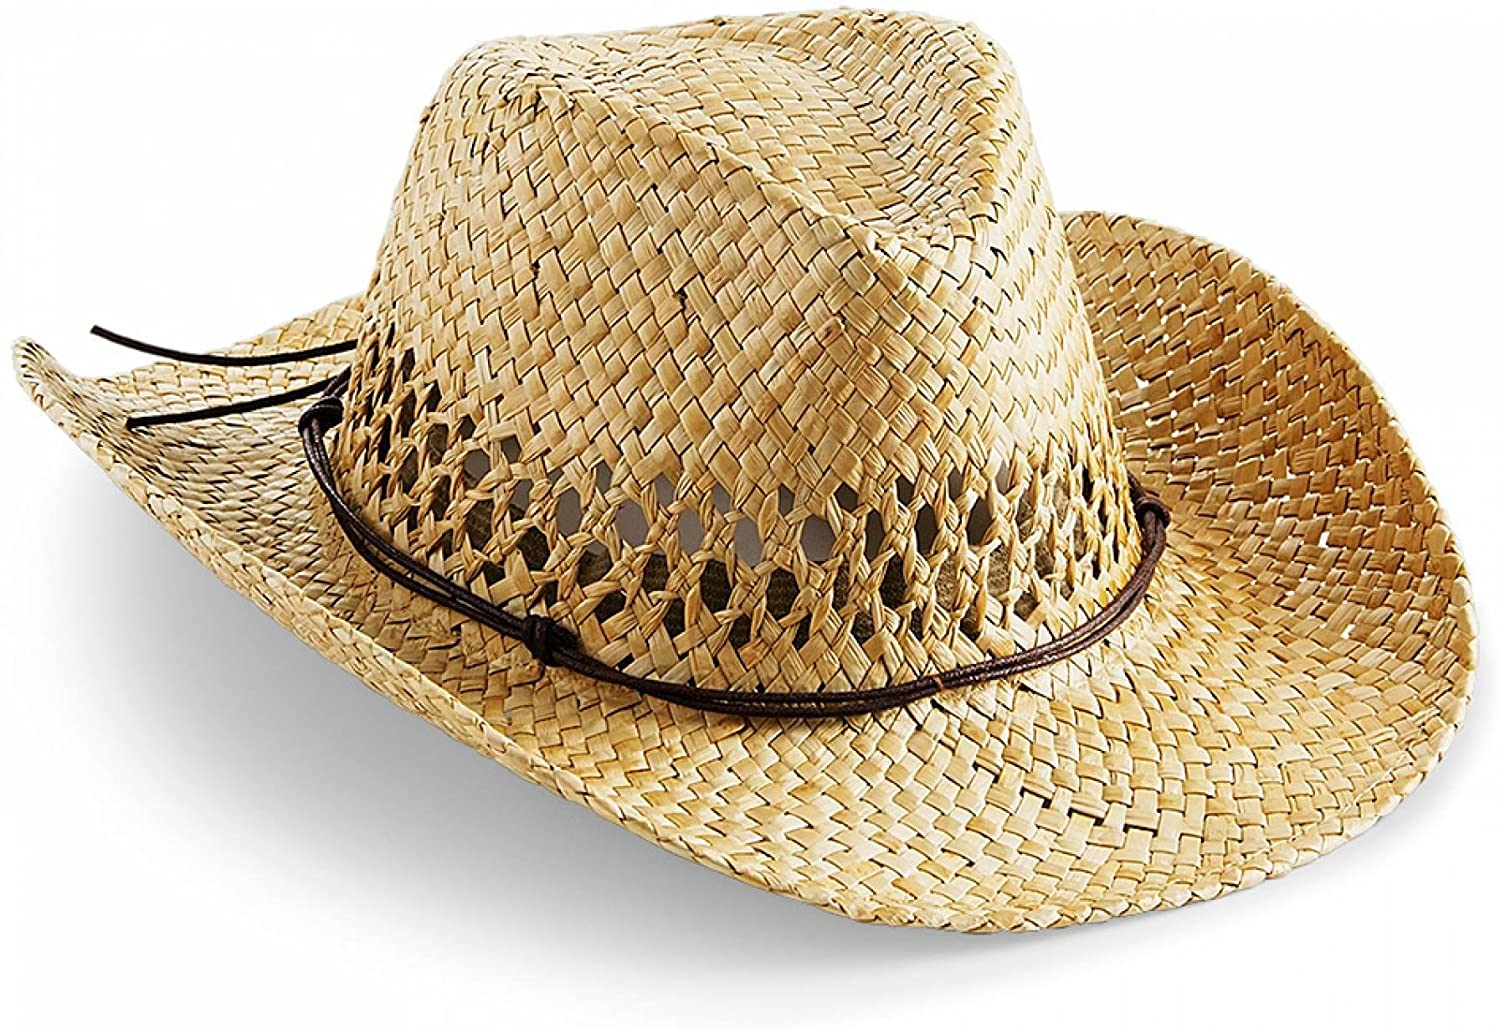 Cowboy Hat | Summer Hat | Straw Hat natural normani®